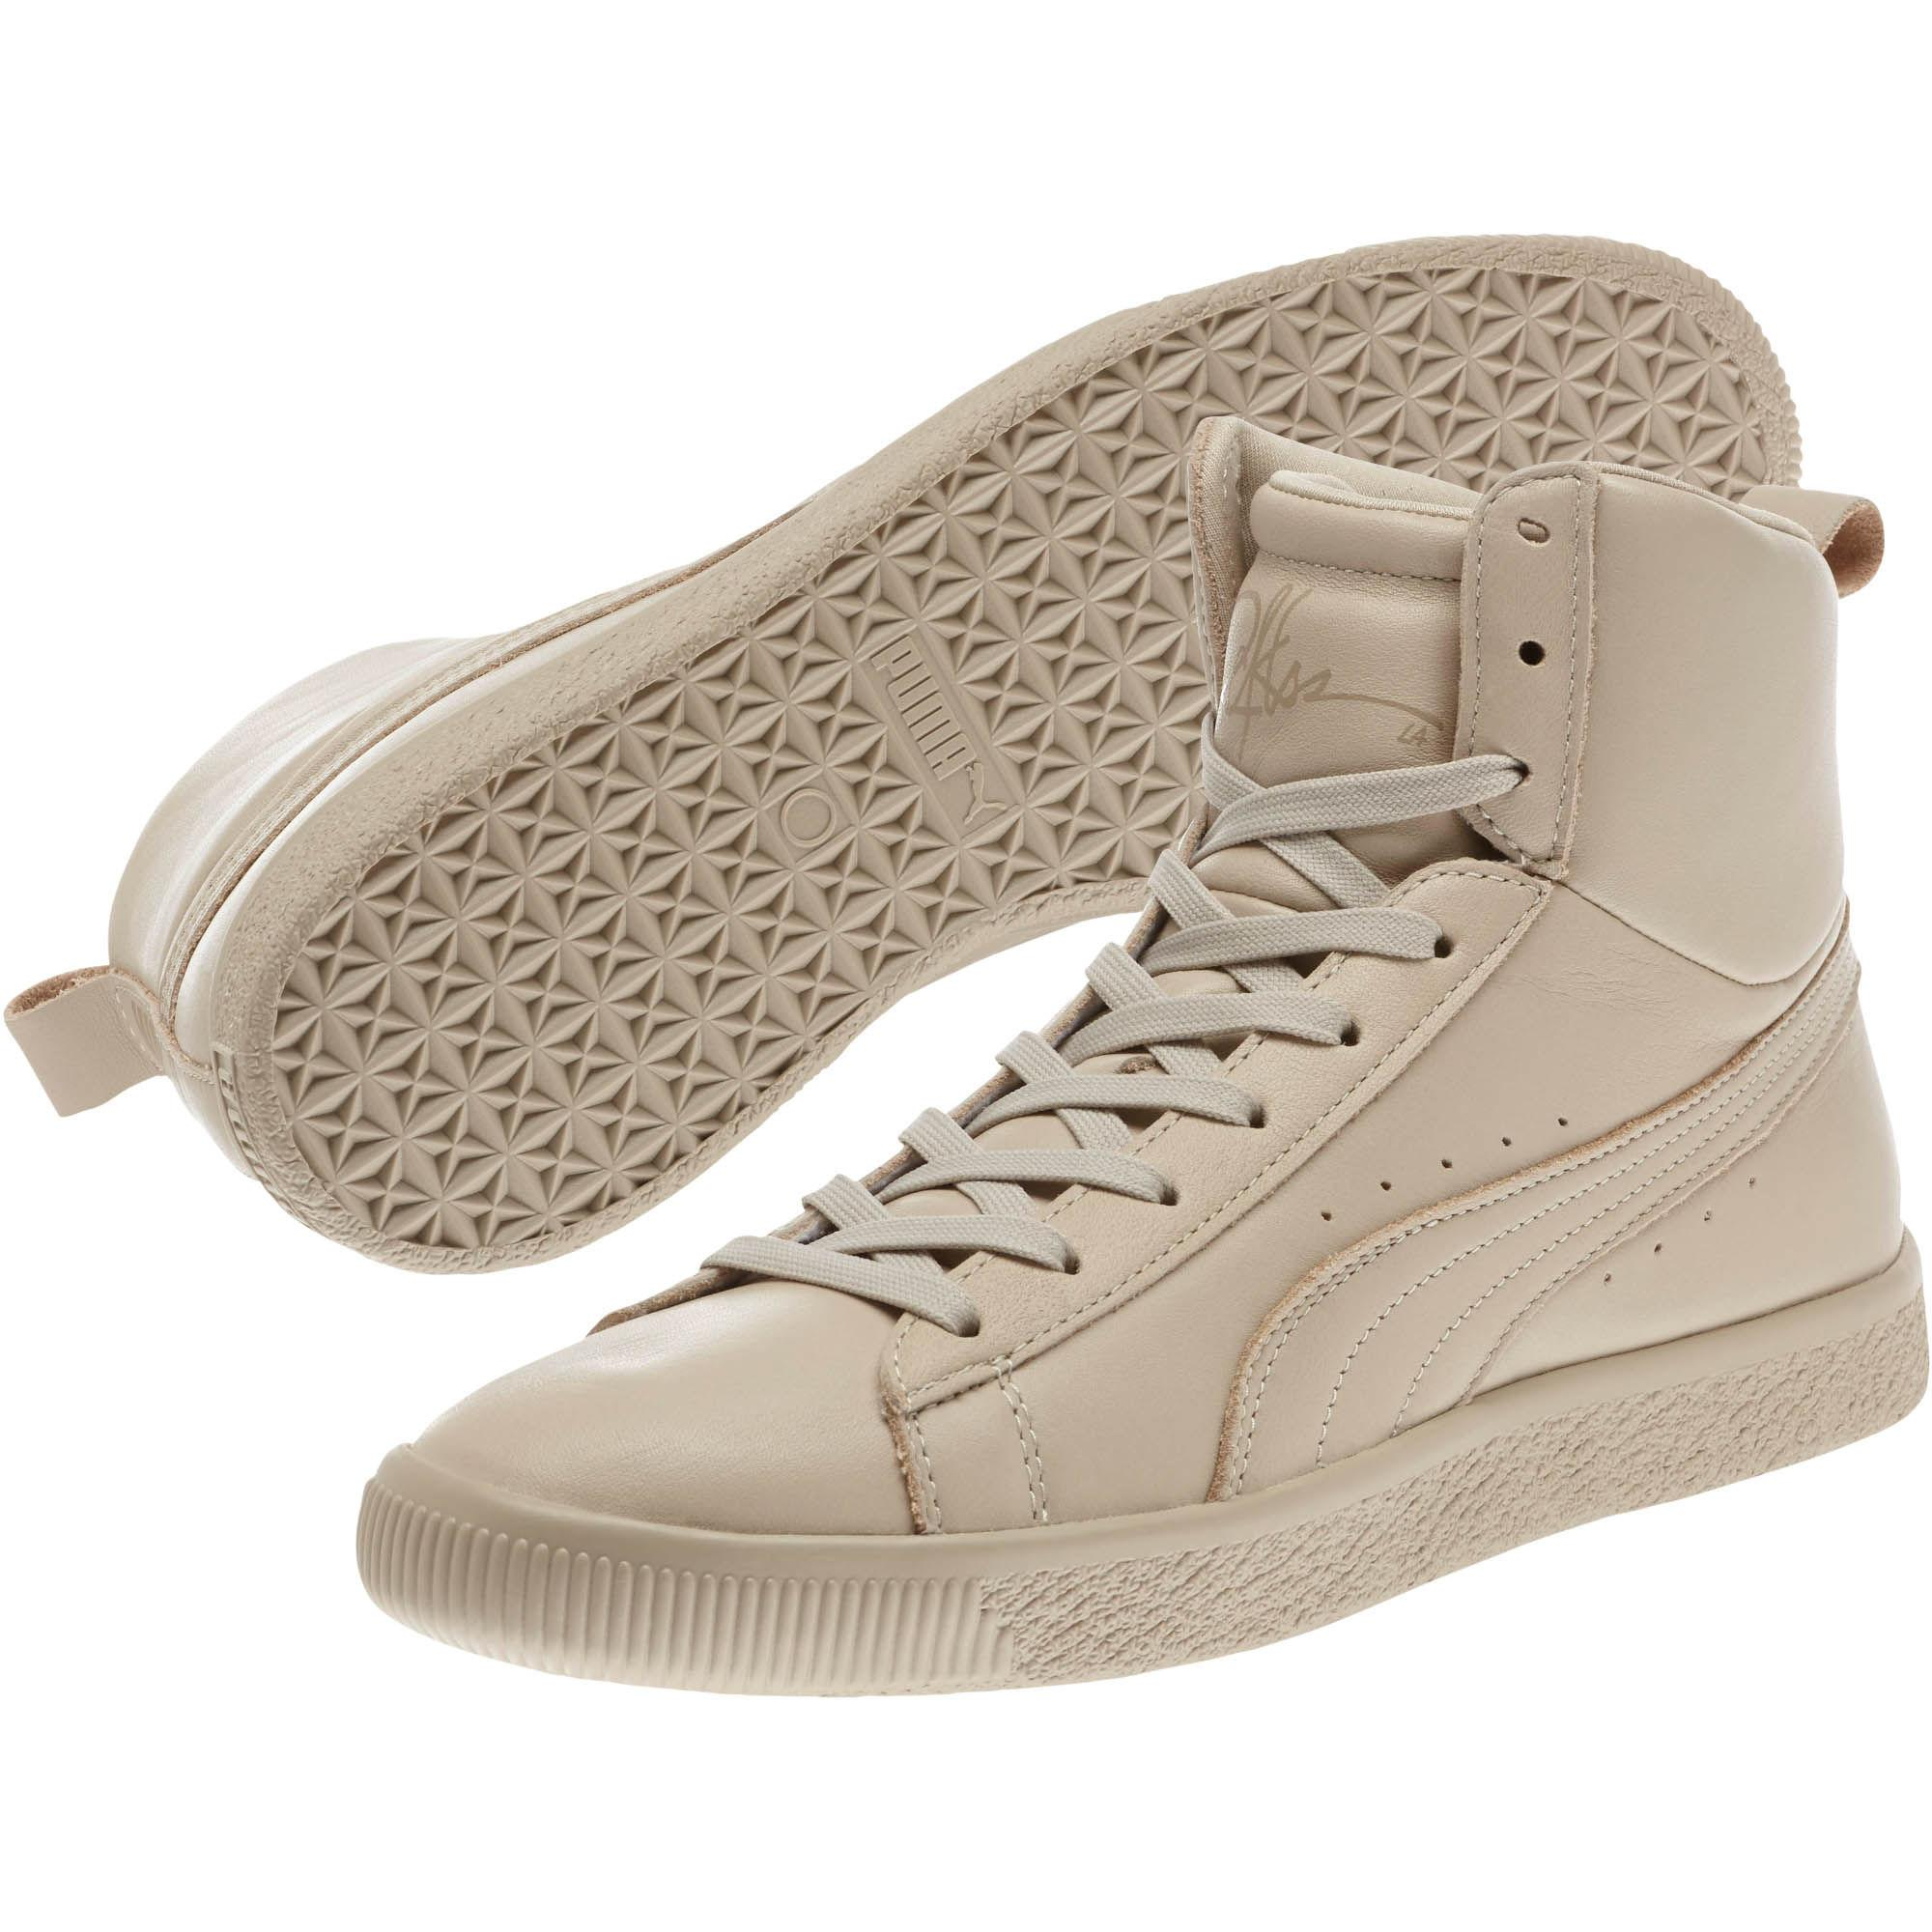 Young \u0026 Reckless Clyde Mid Sneakers